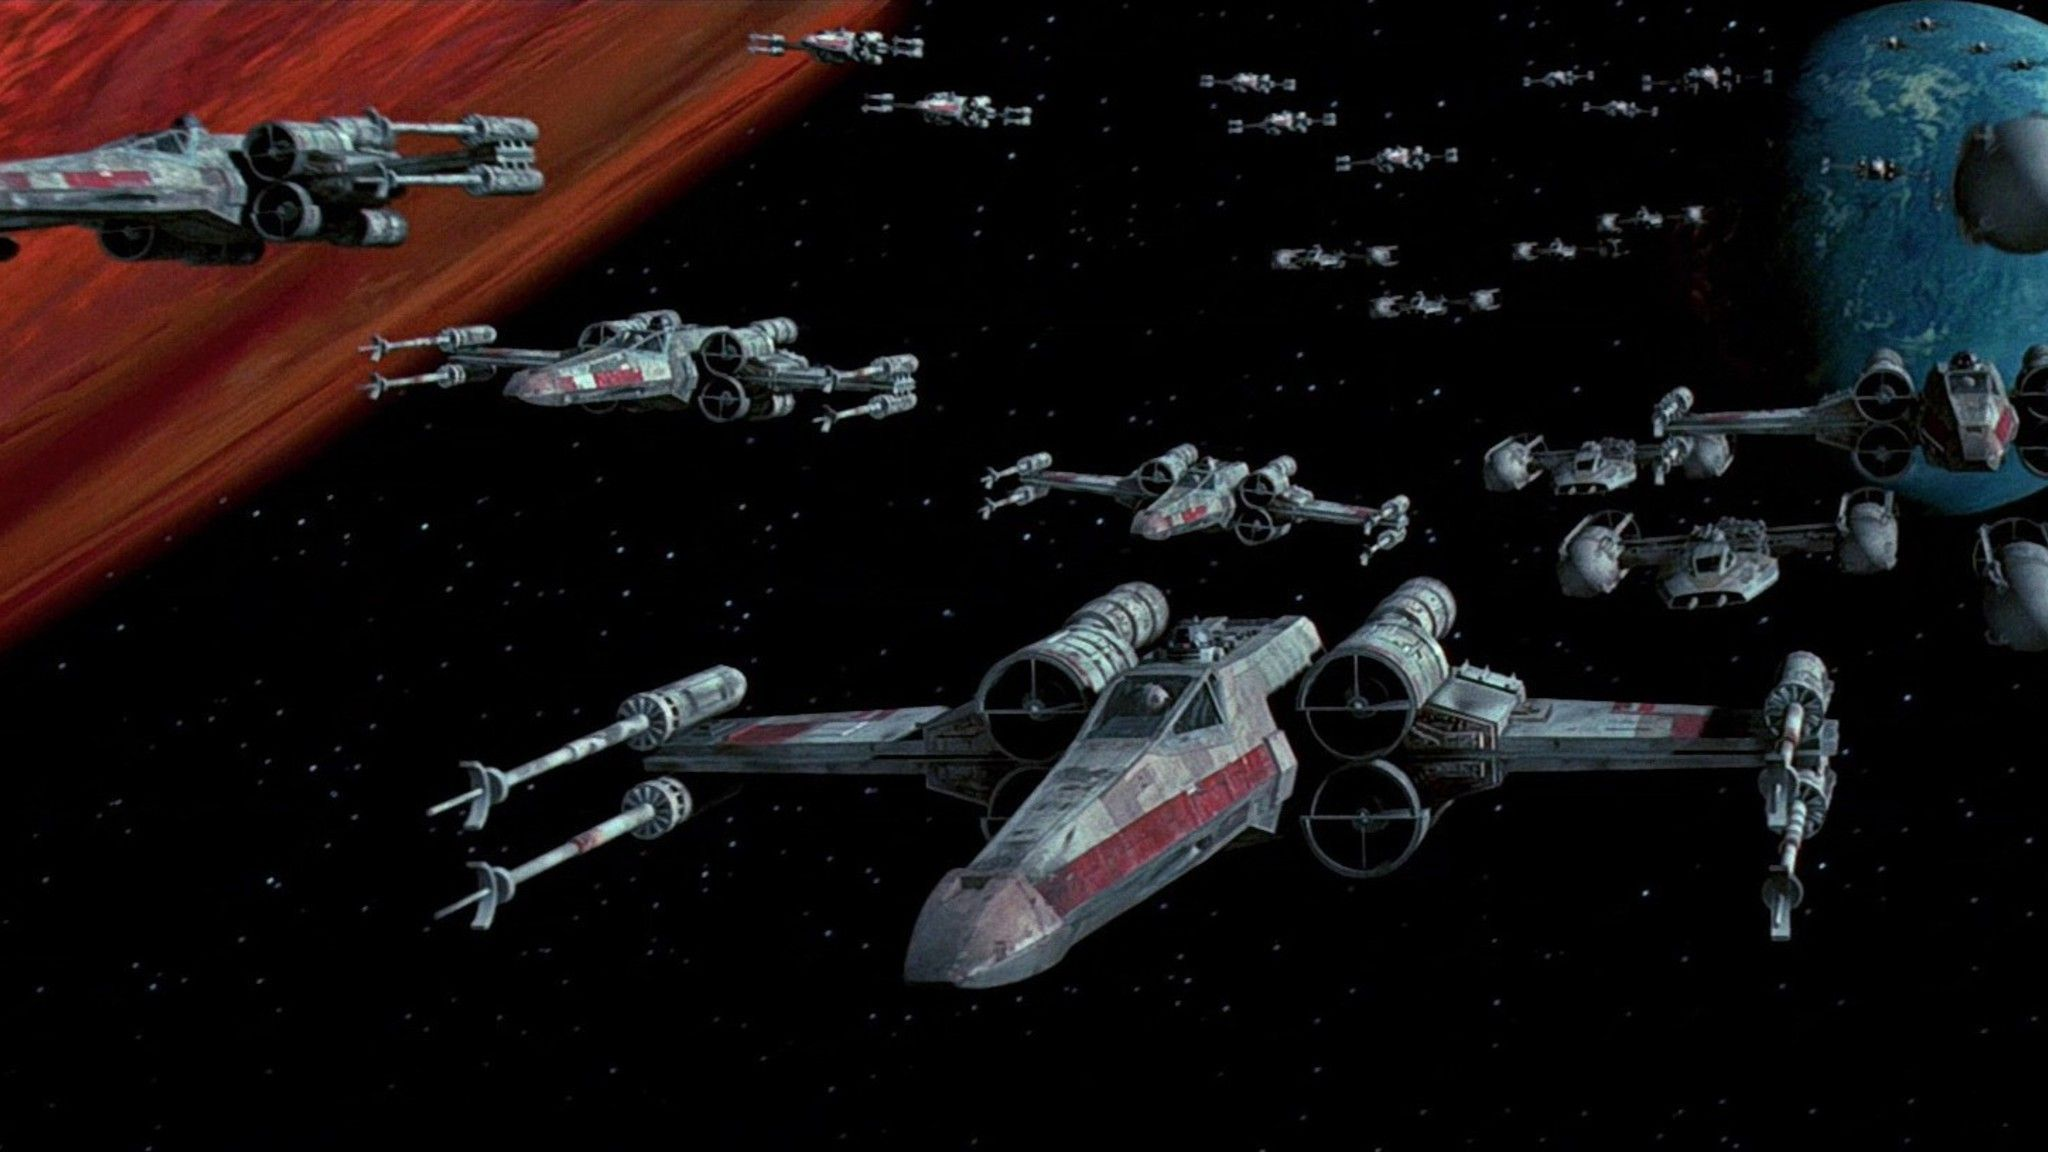 star-wars-outer-space-movies-x-wing-y-wing